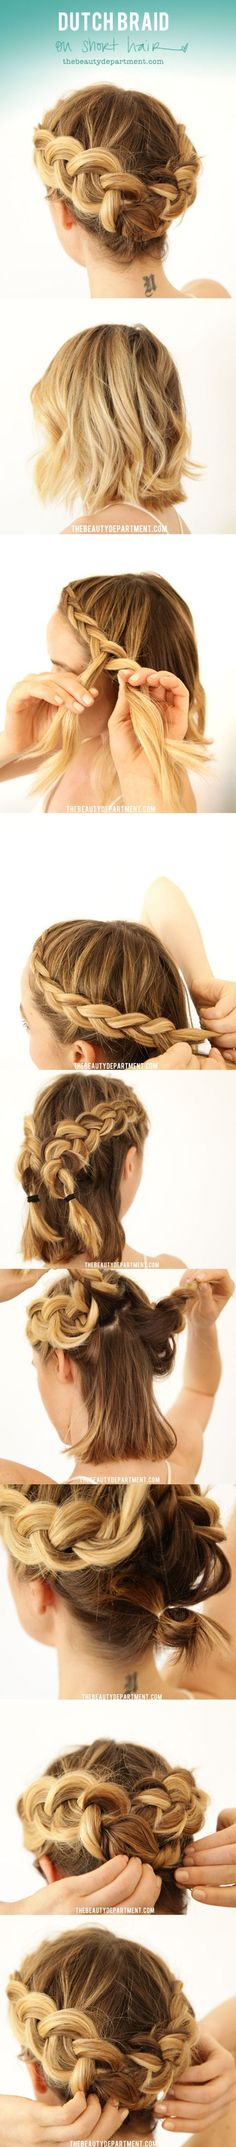 Dutch braid tutorial for short hair